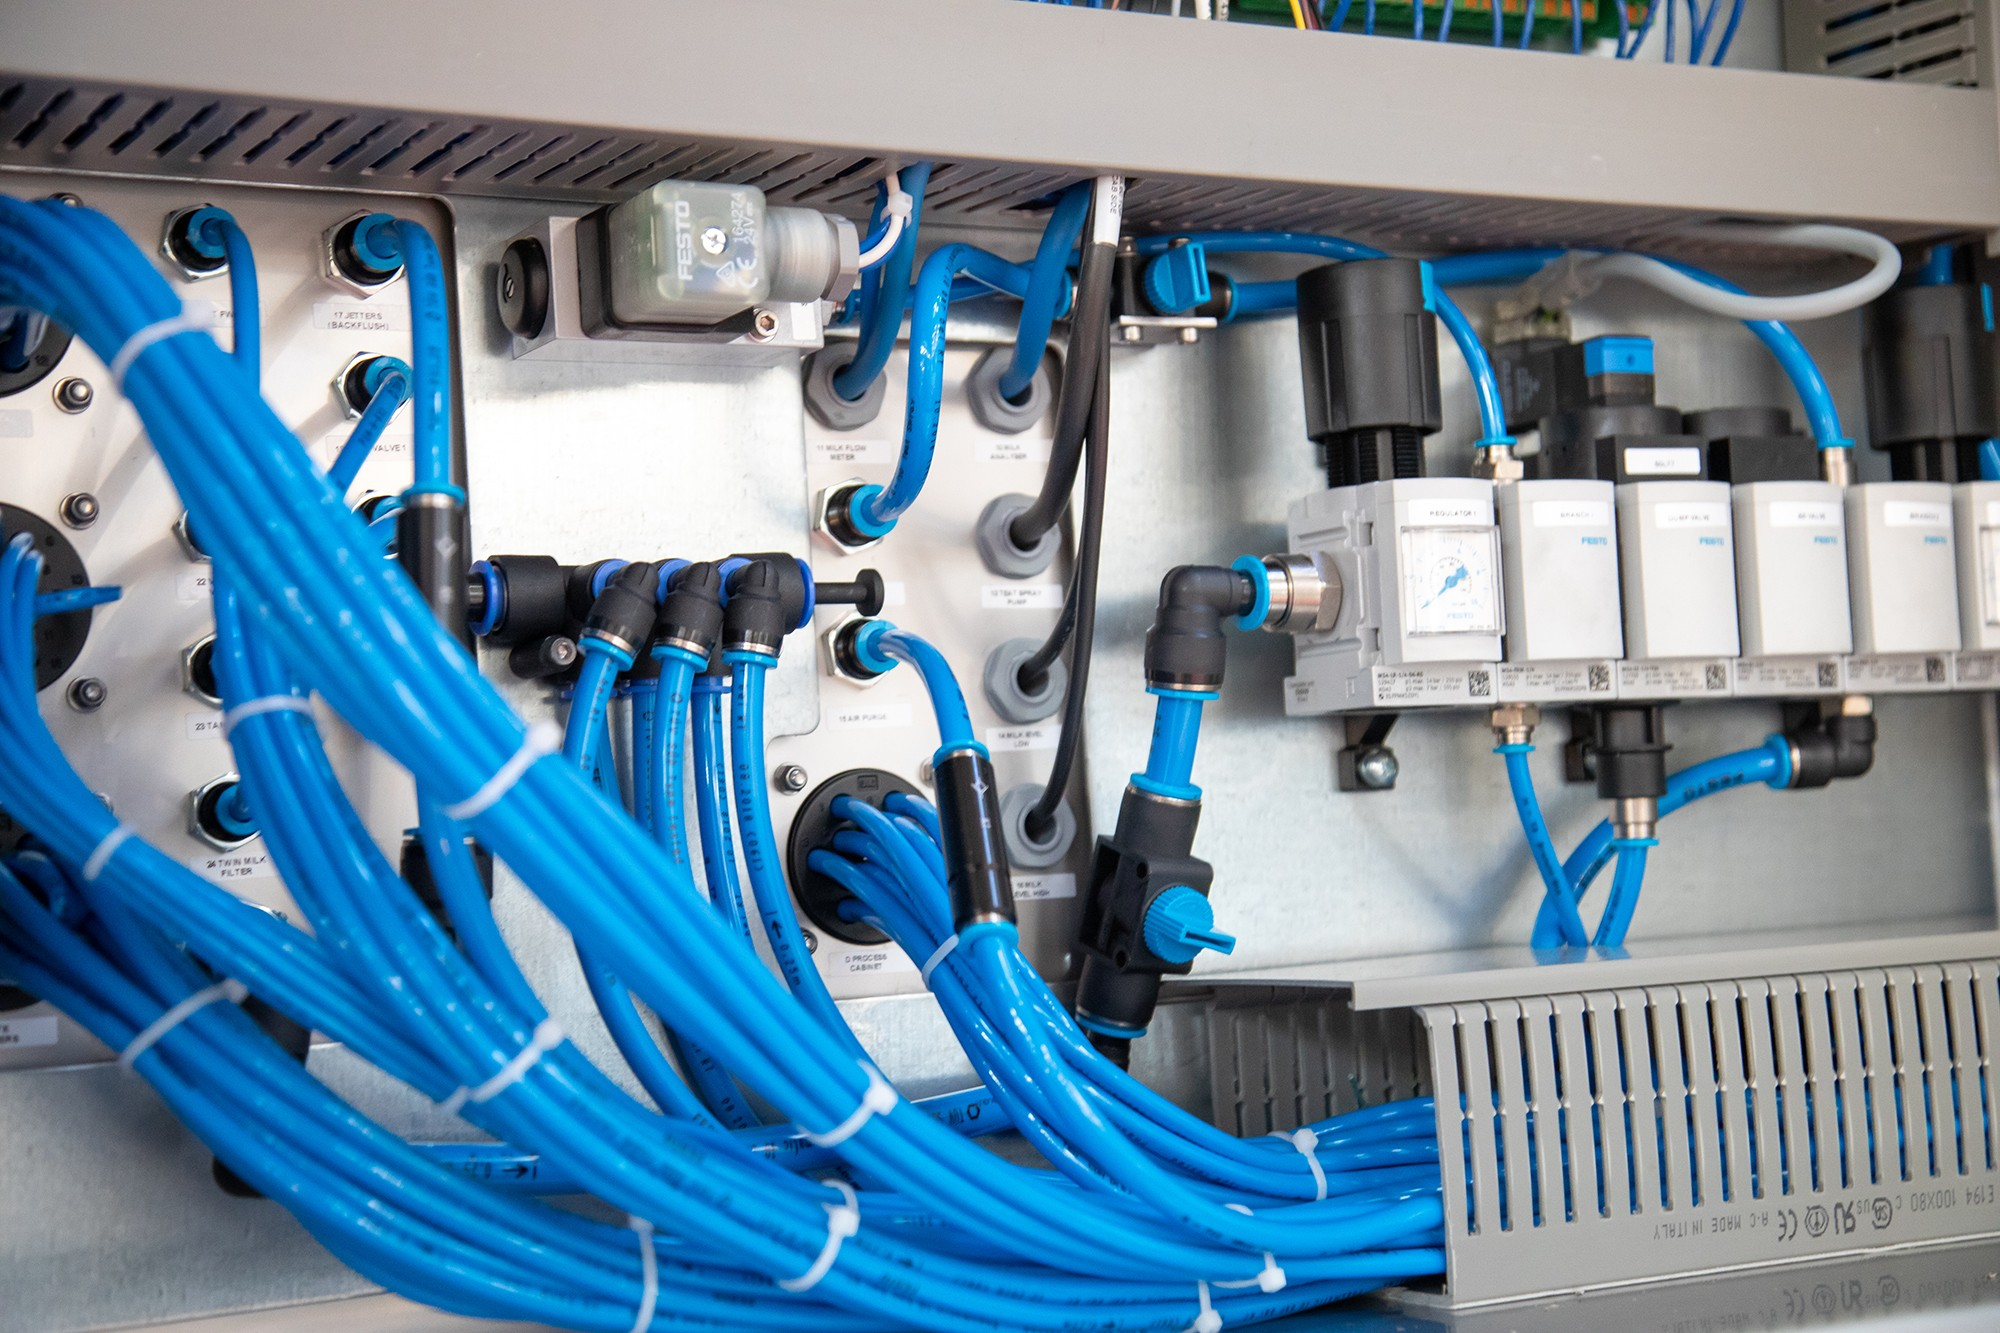 Electrical control & automation » ppfullwood 126 » PP Control & Automation